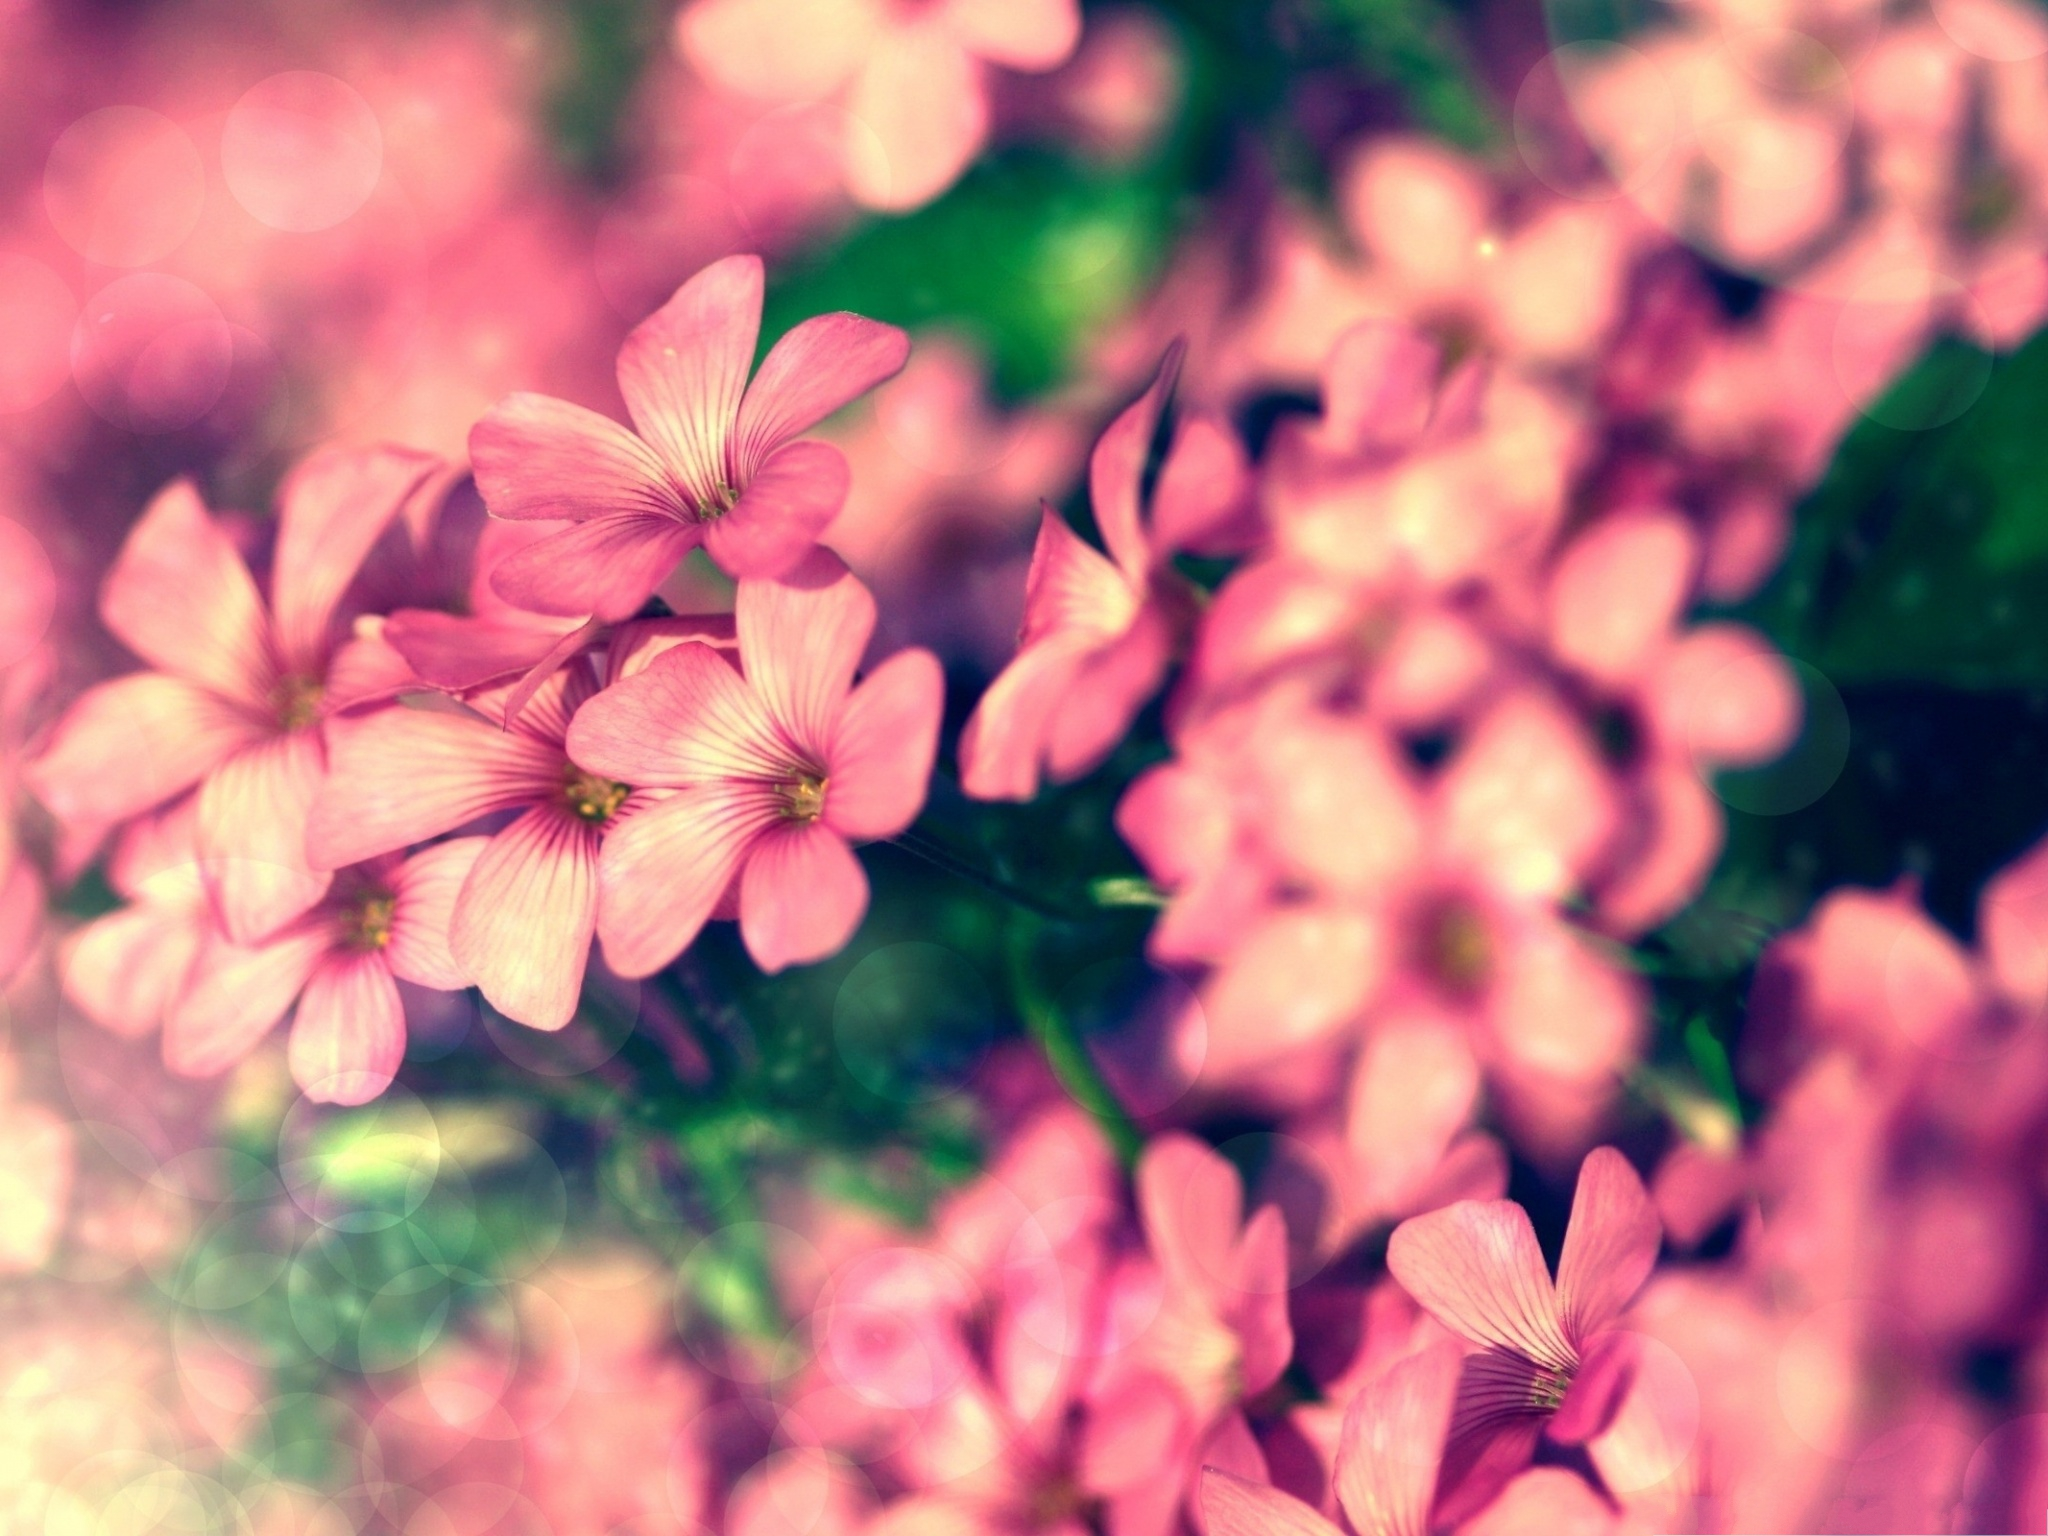 click to free download the wallpaper--Tiny Pink Flowers, Small Flowers Blooming, Green Leaves Around, Great Scenery 2048X1536 free wallpaper download